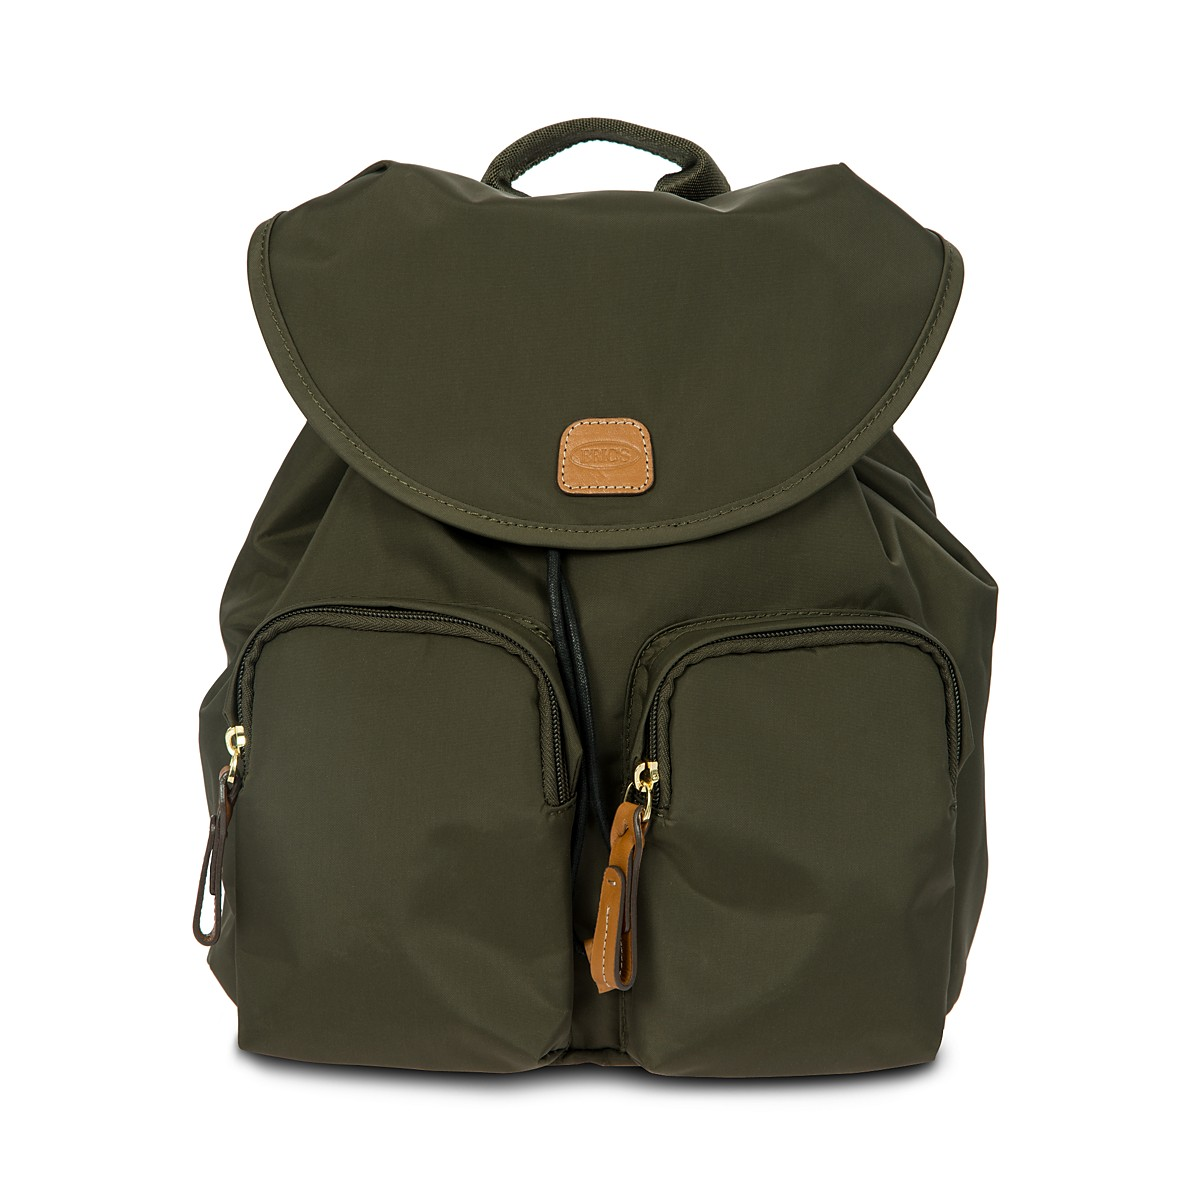 professional womens backpack business travel